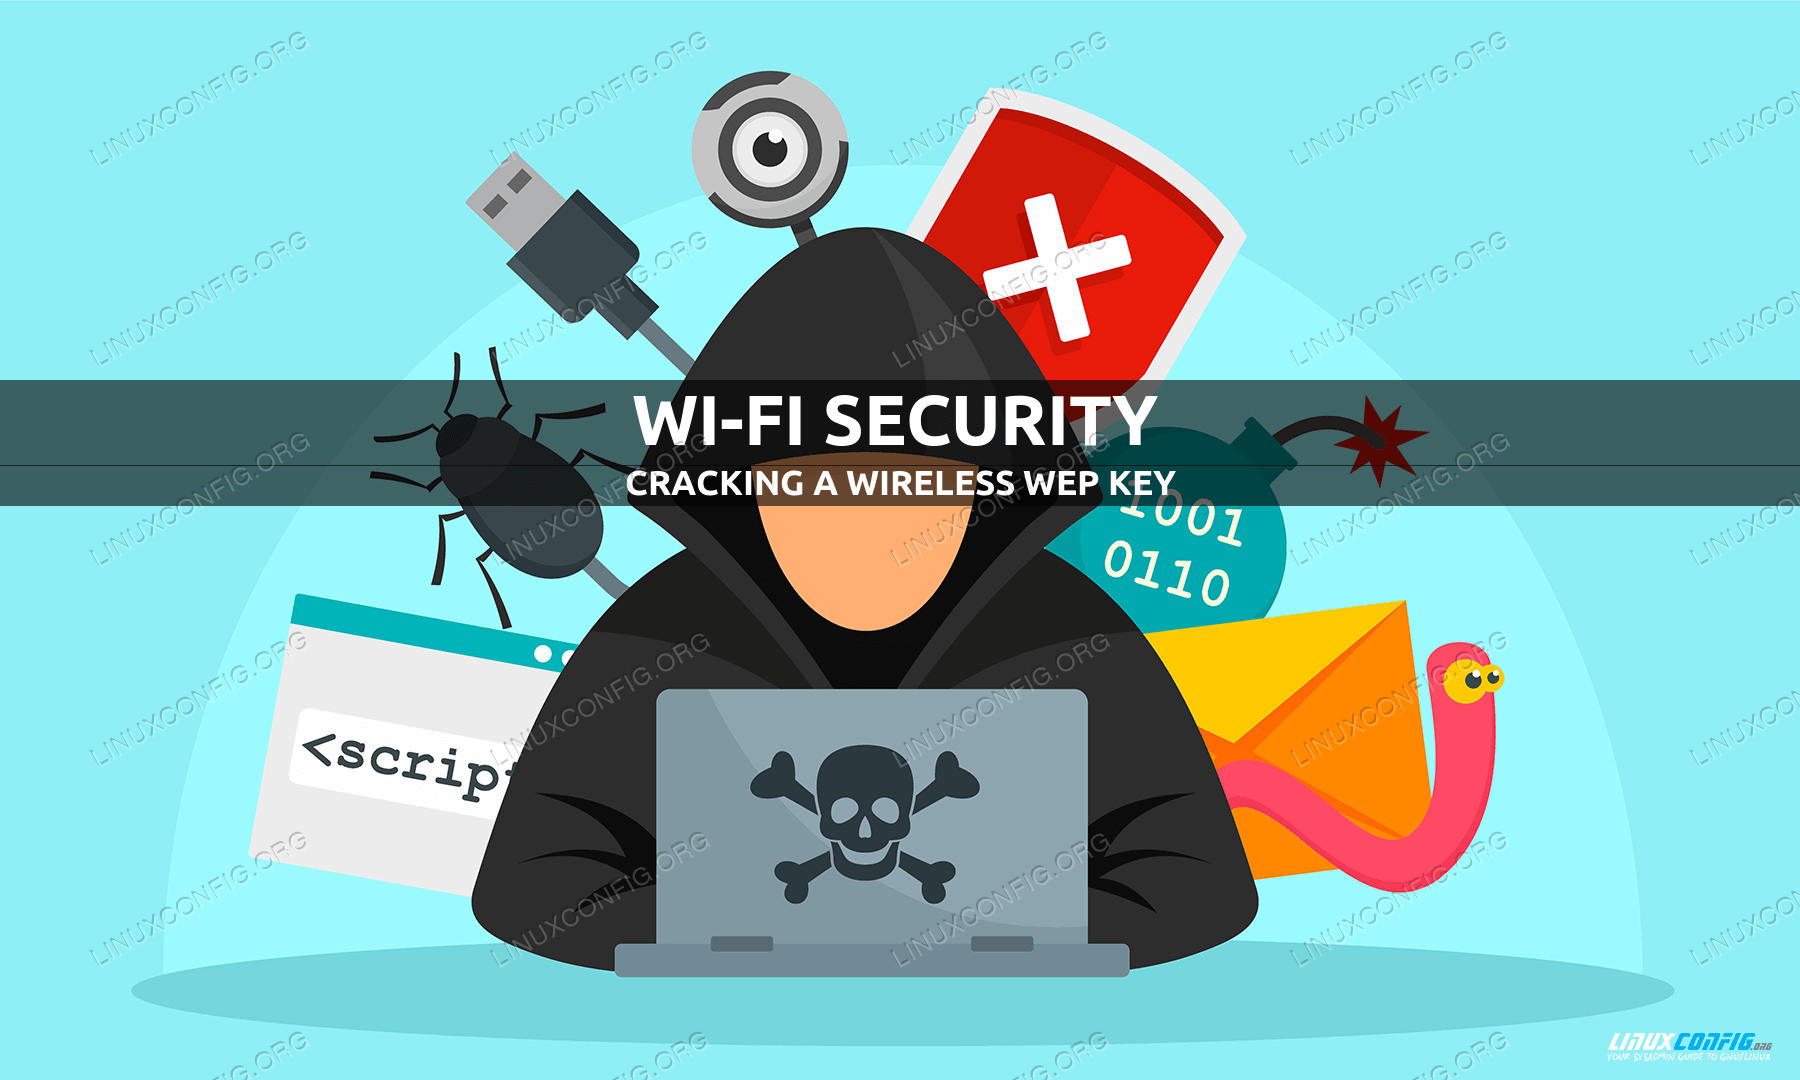 How to crack a wireless WEP key using aircrack-ng